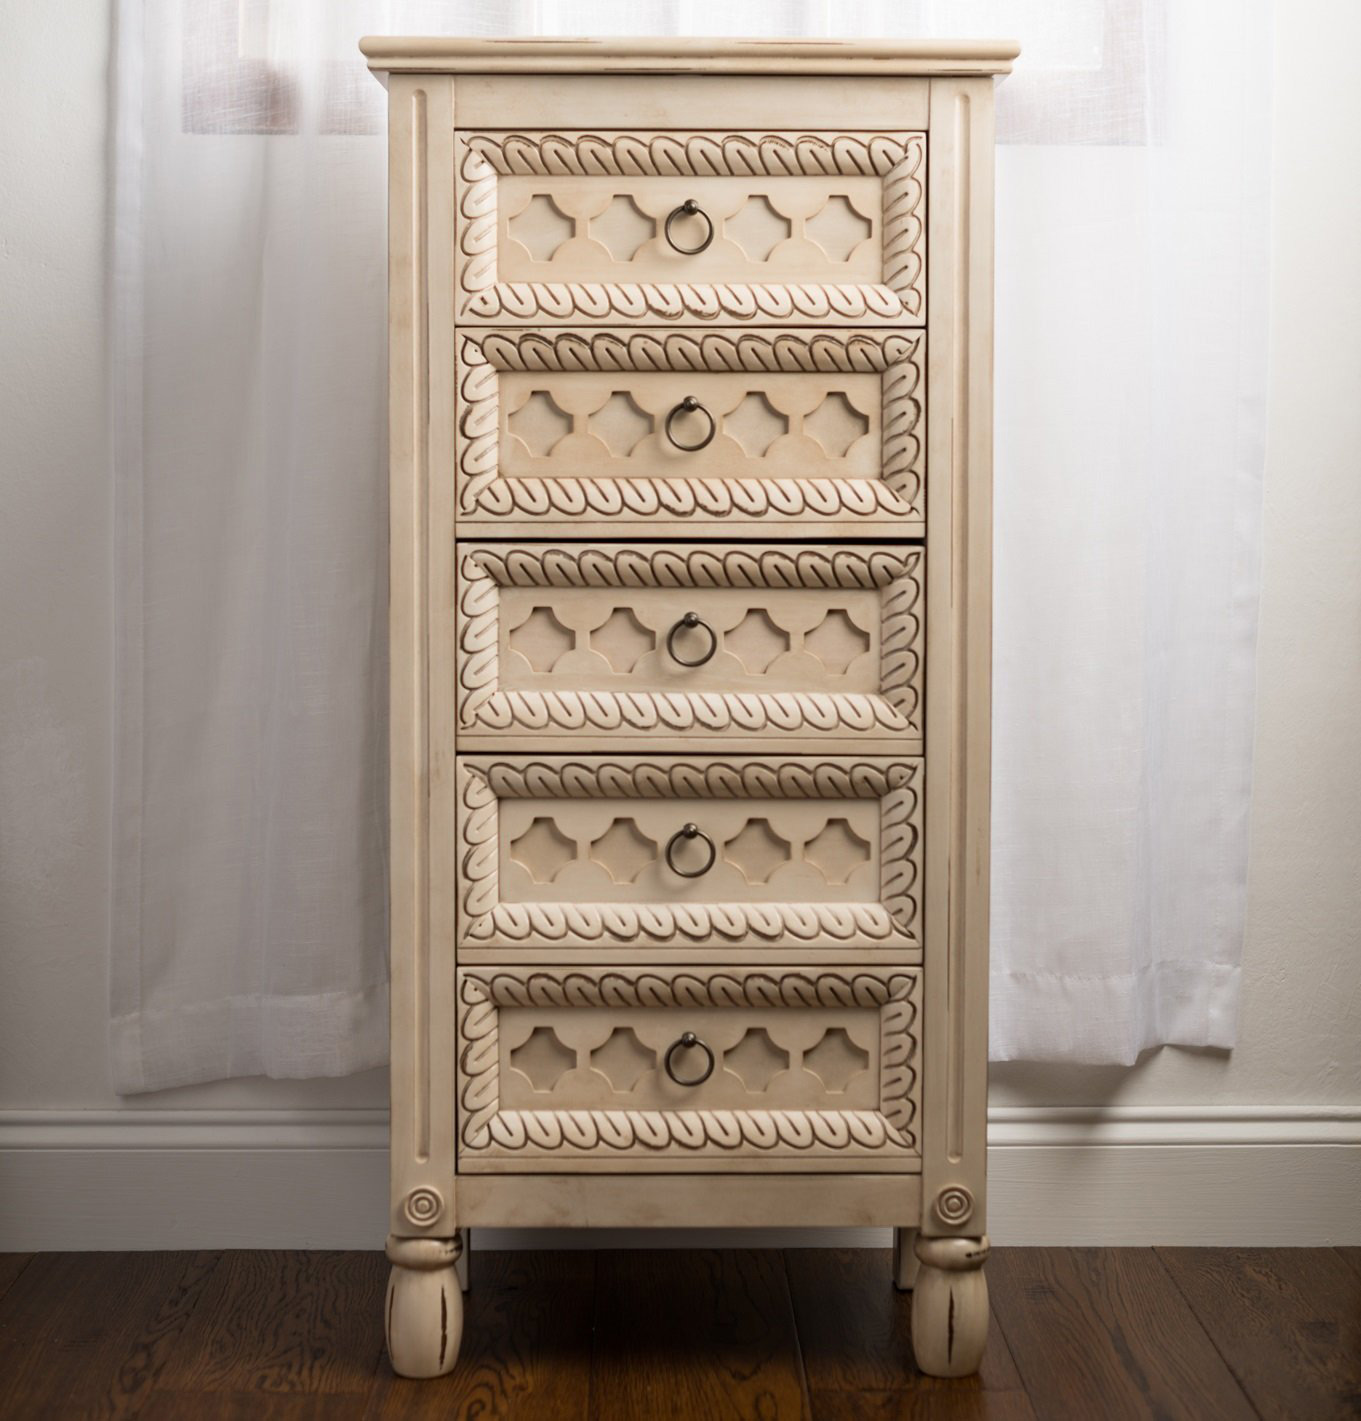 Creative Rustic Decorative White Free Standing Jewelry Armoire